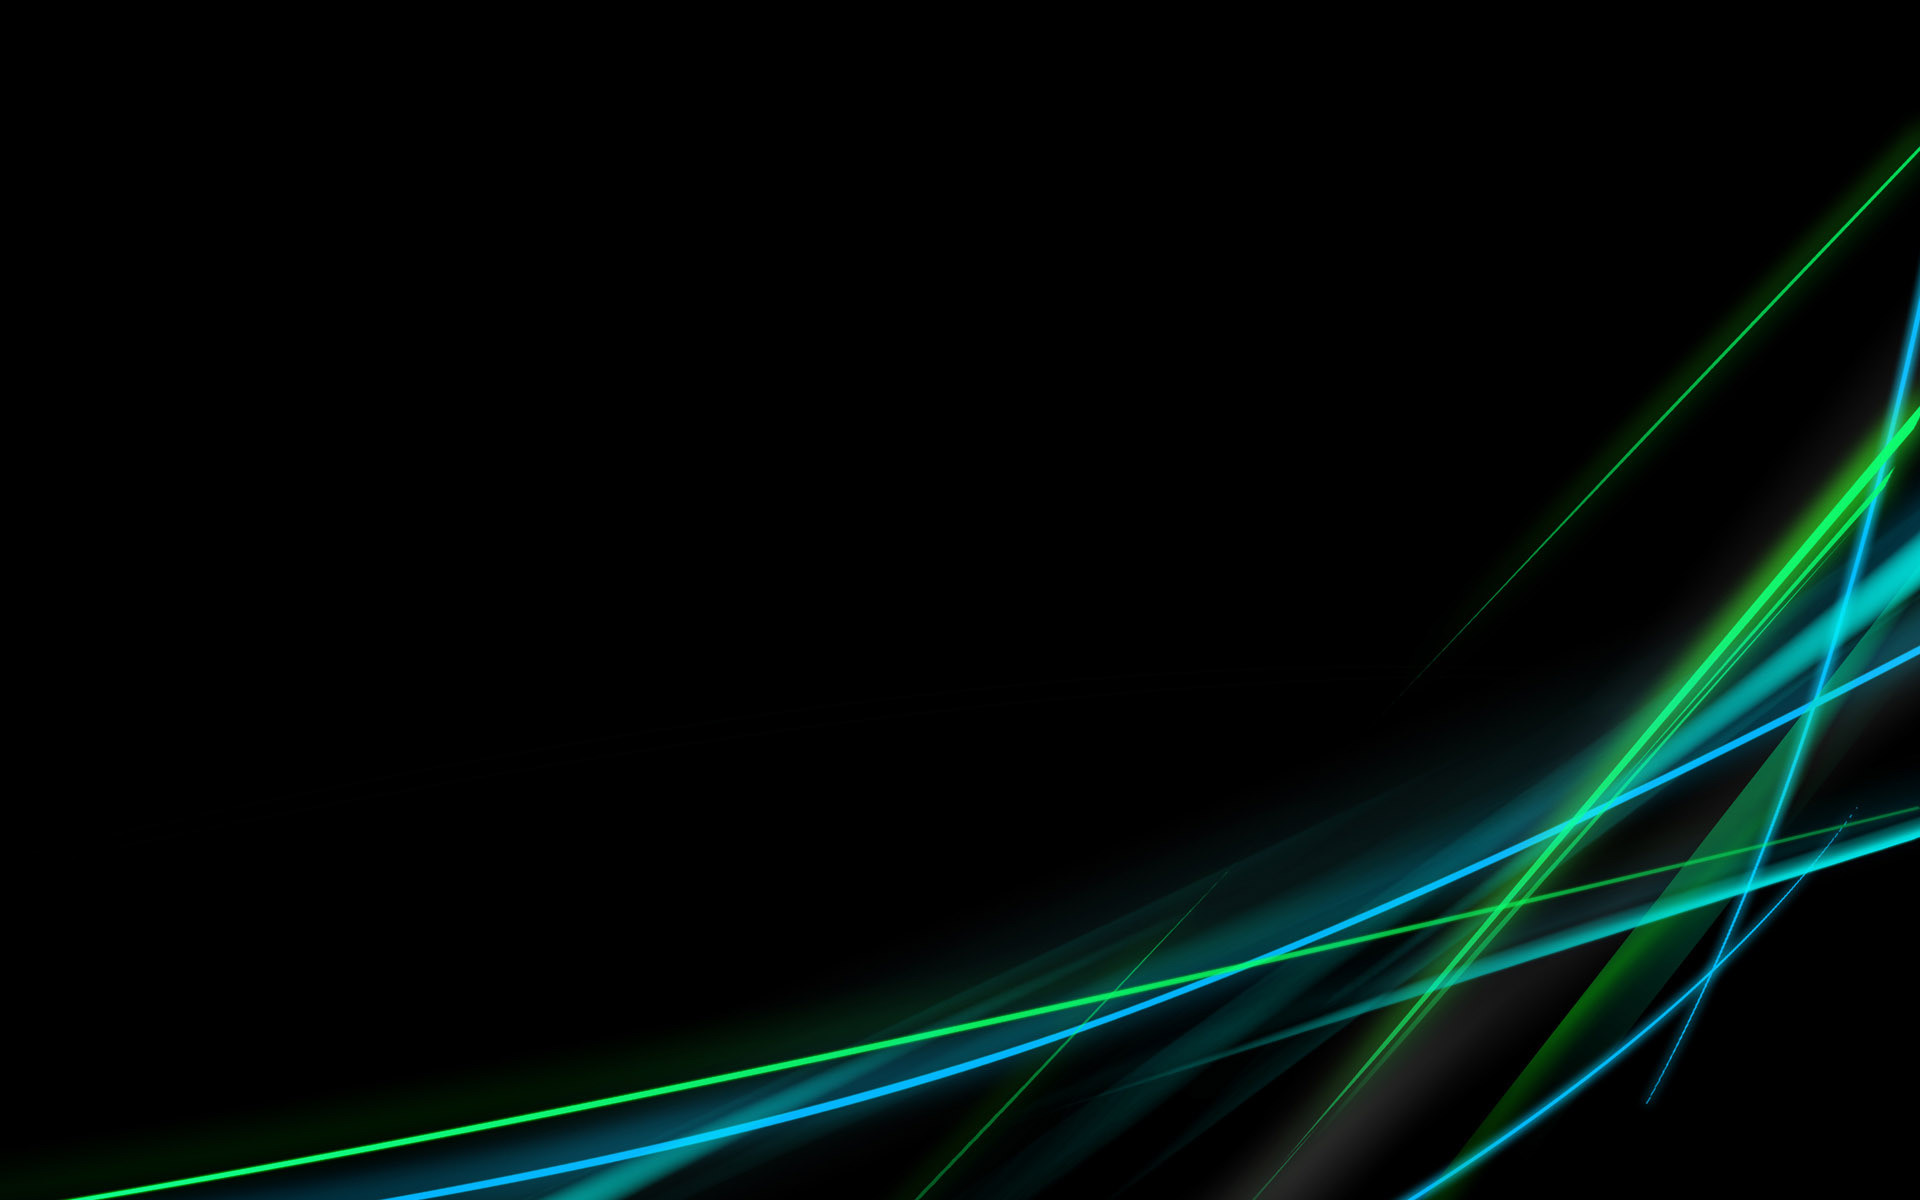 windows 7 wallpaper black (67+ images)